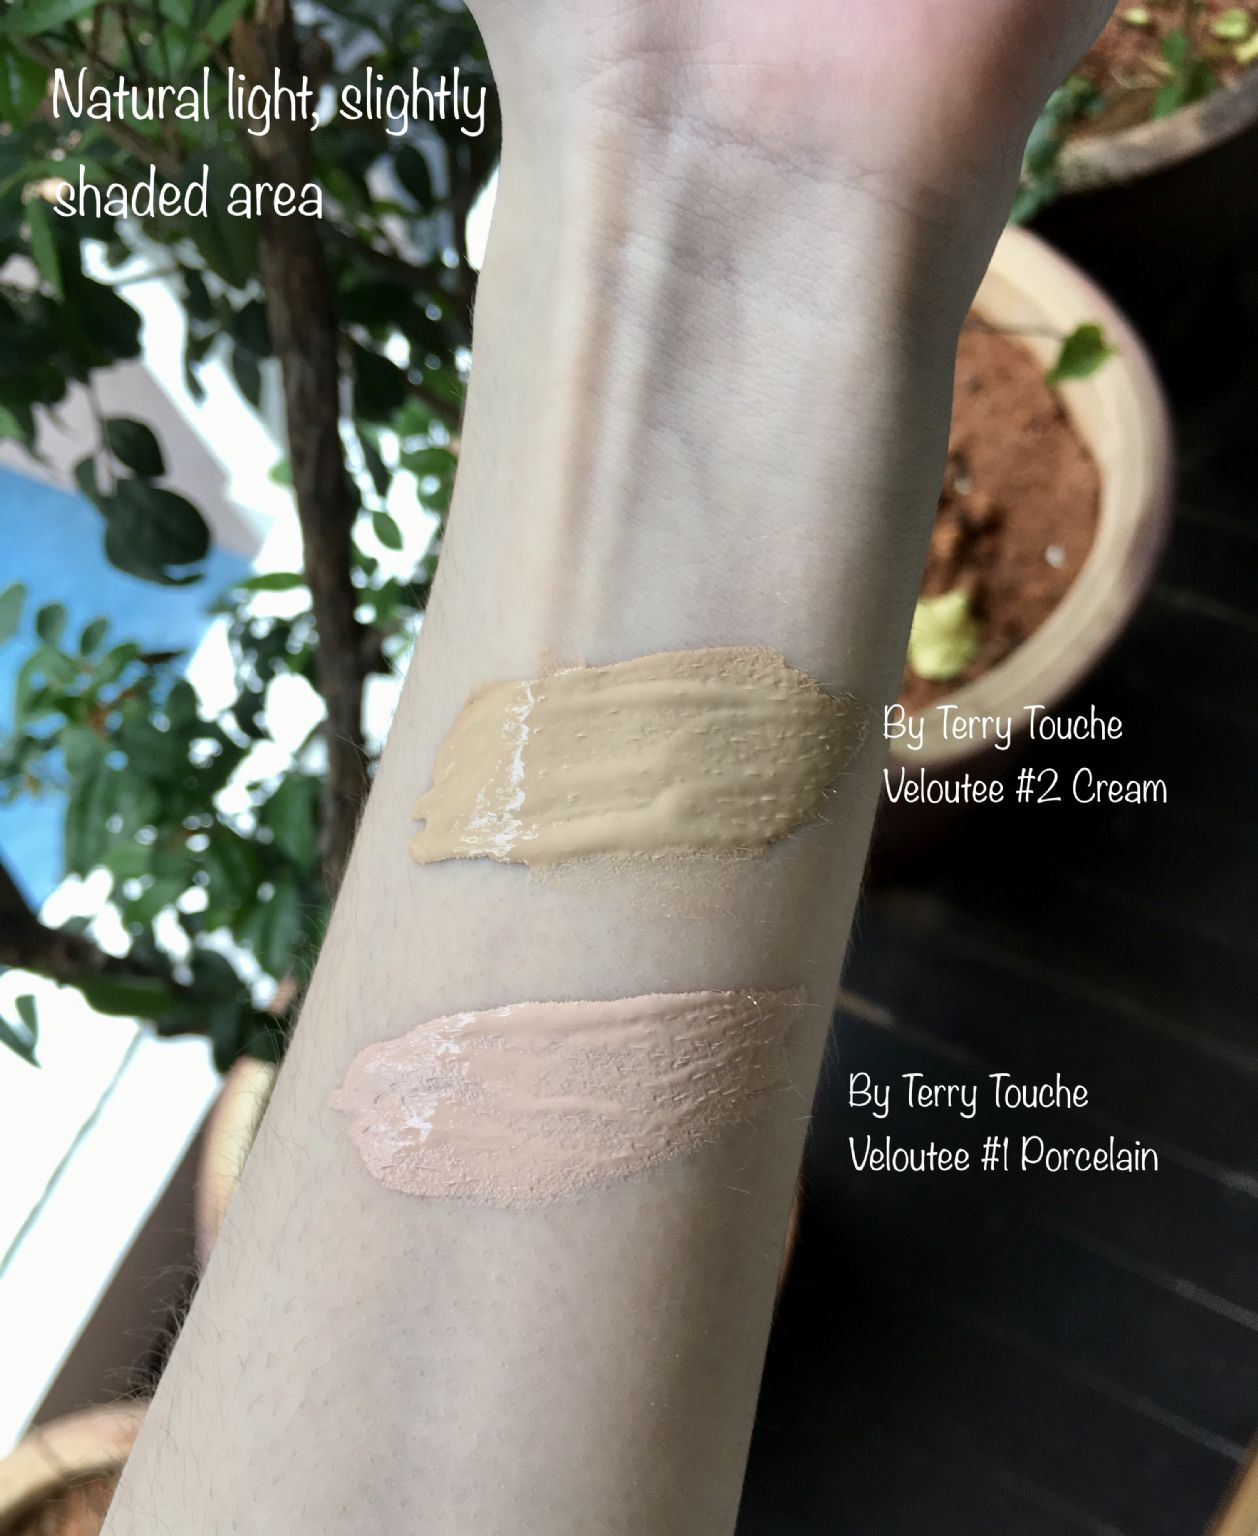 By Terry Touche Veloutee swatches  (Uploaded by triplexm)